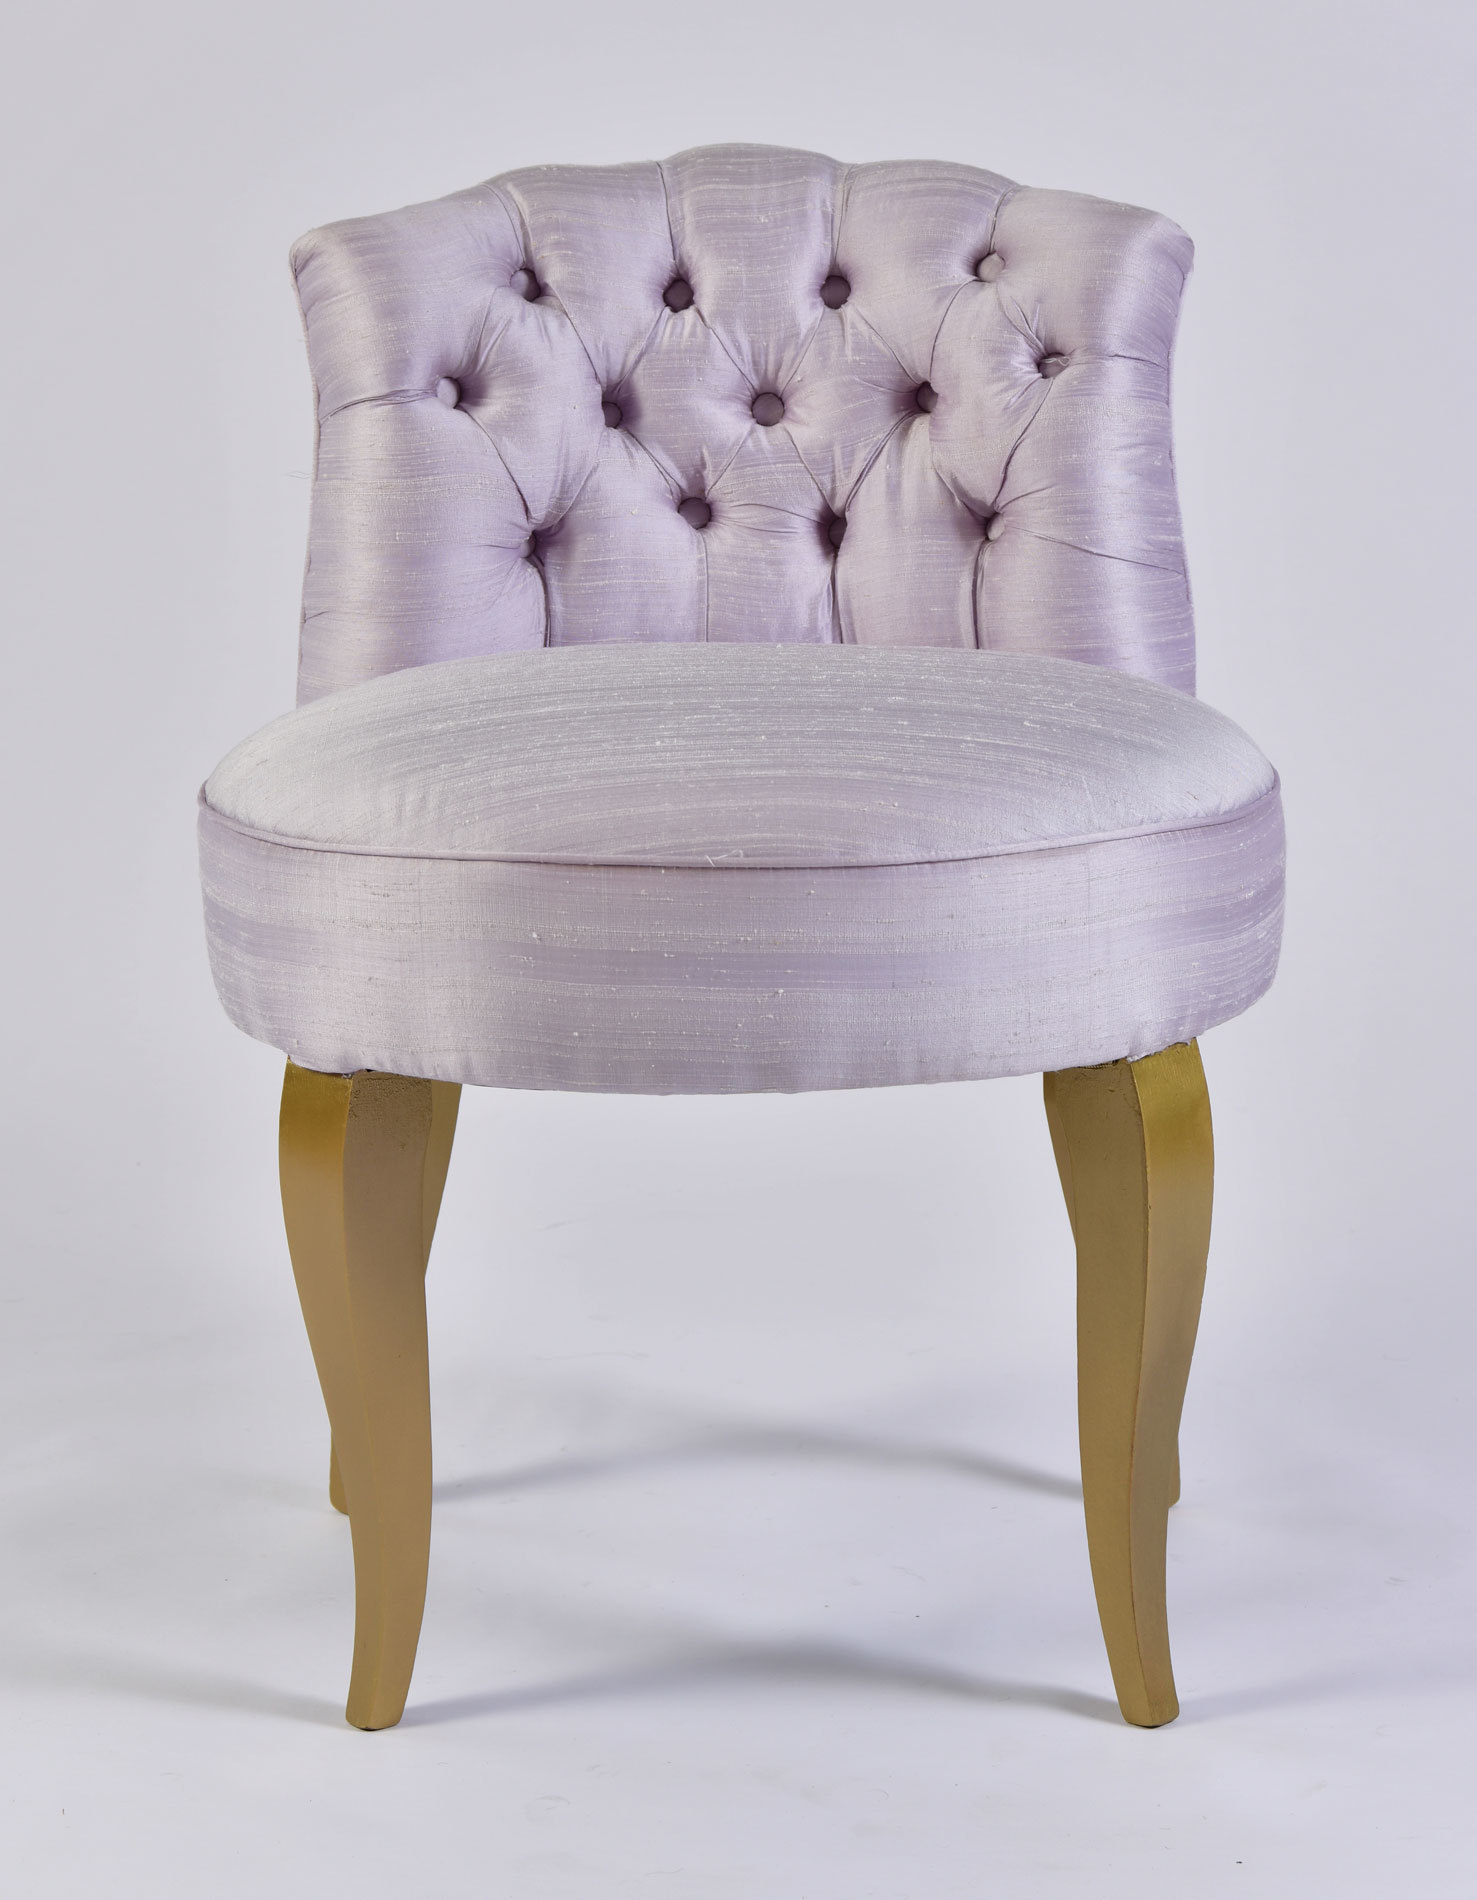 The image for Vintage Upholstered Seat 02